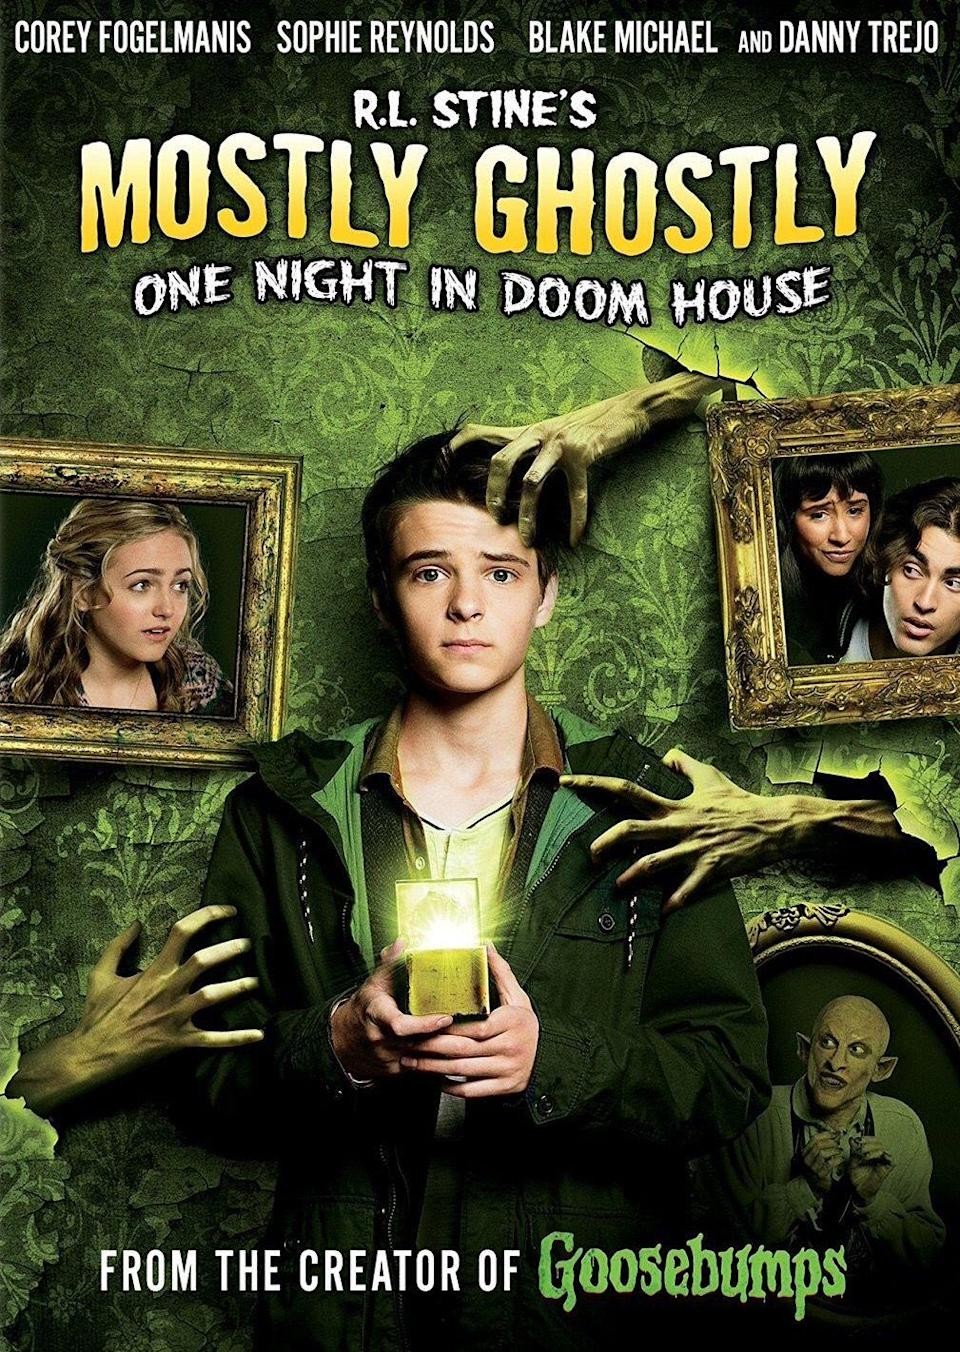 <p>A high school magician's public seance brings forth a chance encounter with the ghost of a French maid and unearths a plan to locate the missing parents of a fellow classmate and friend.</p>